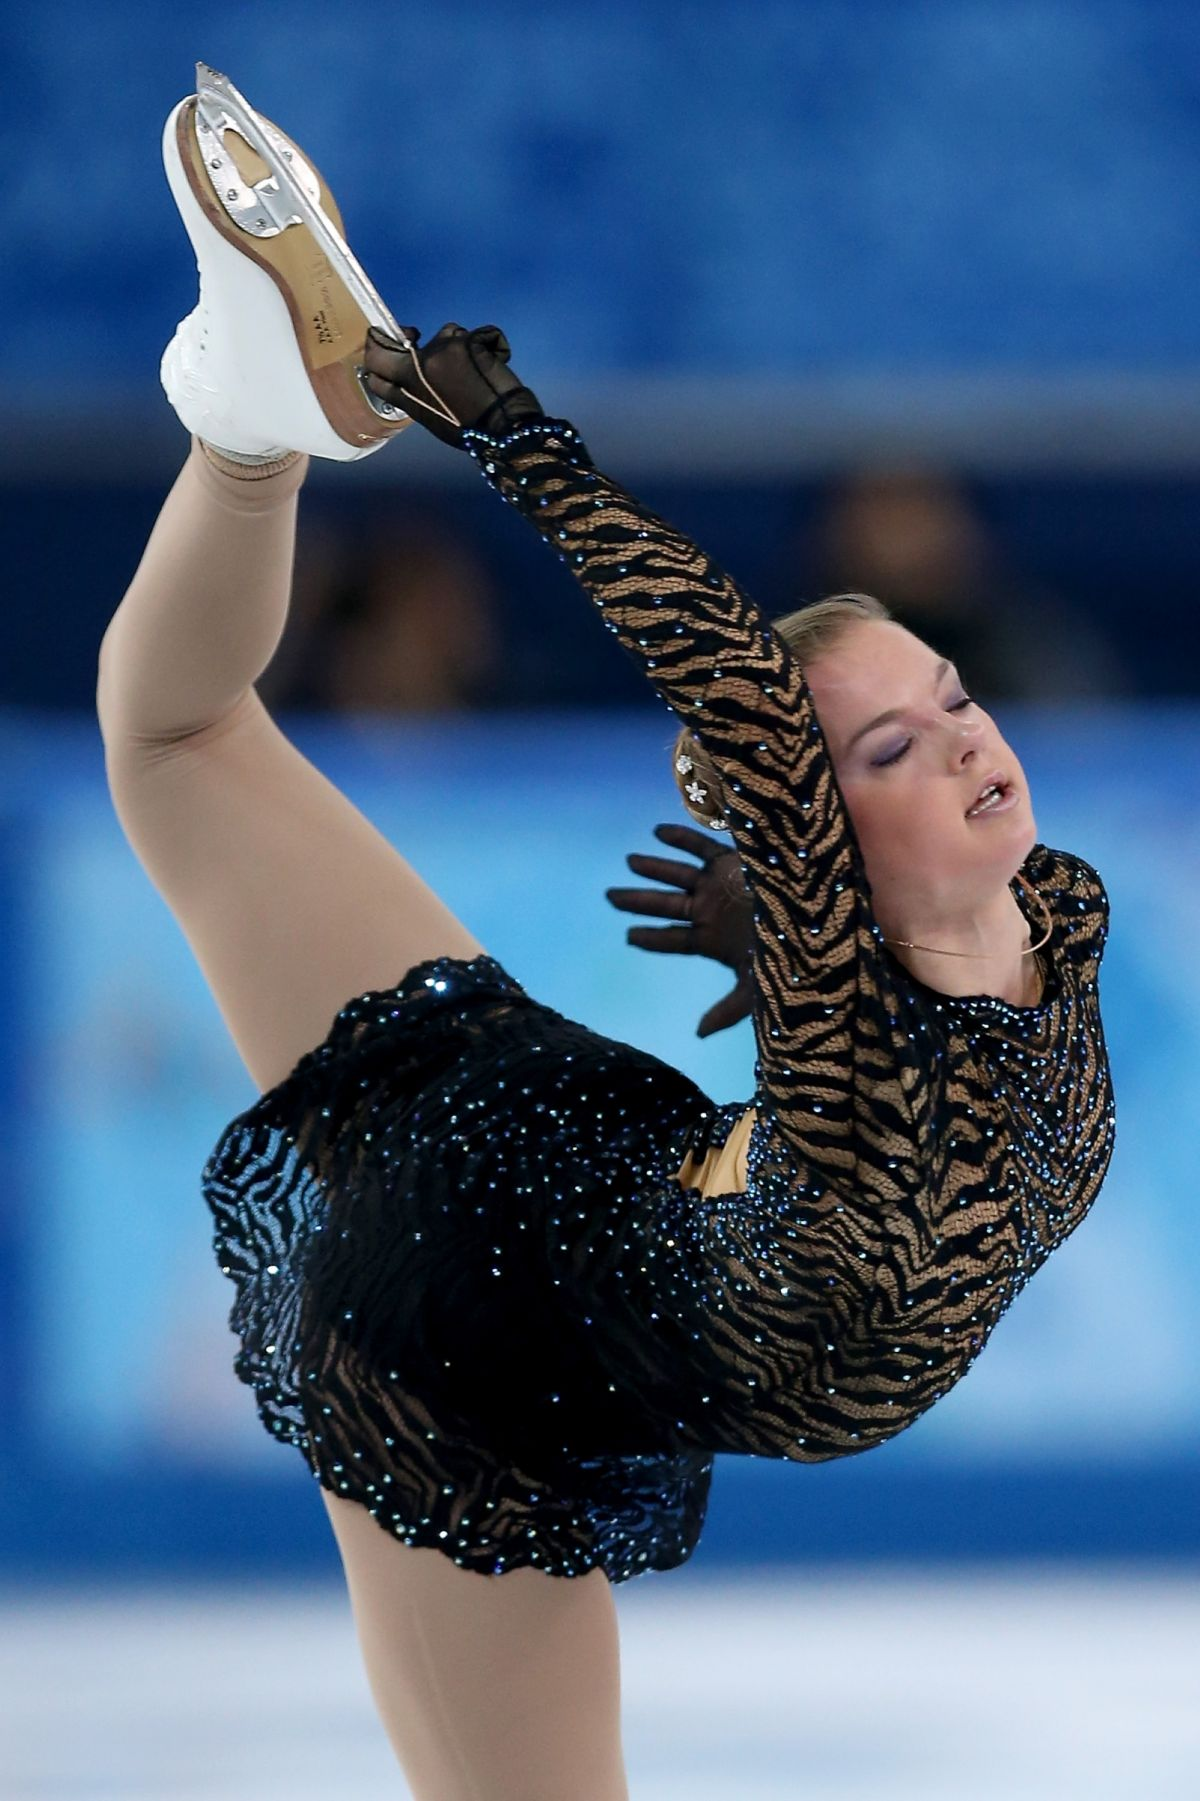 Natalia Popova At Sochi Winter Olympics